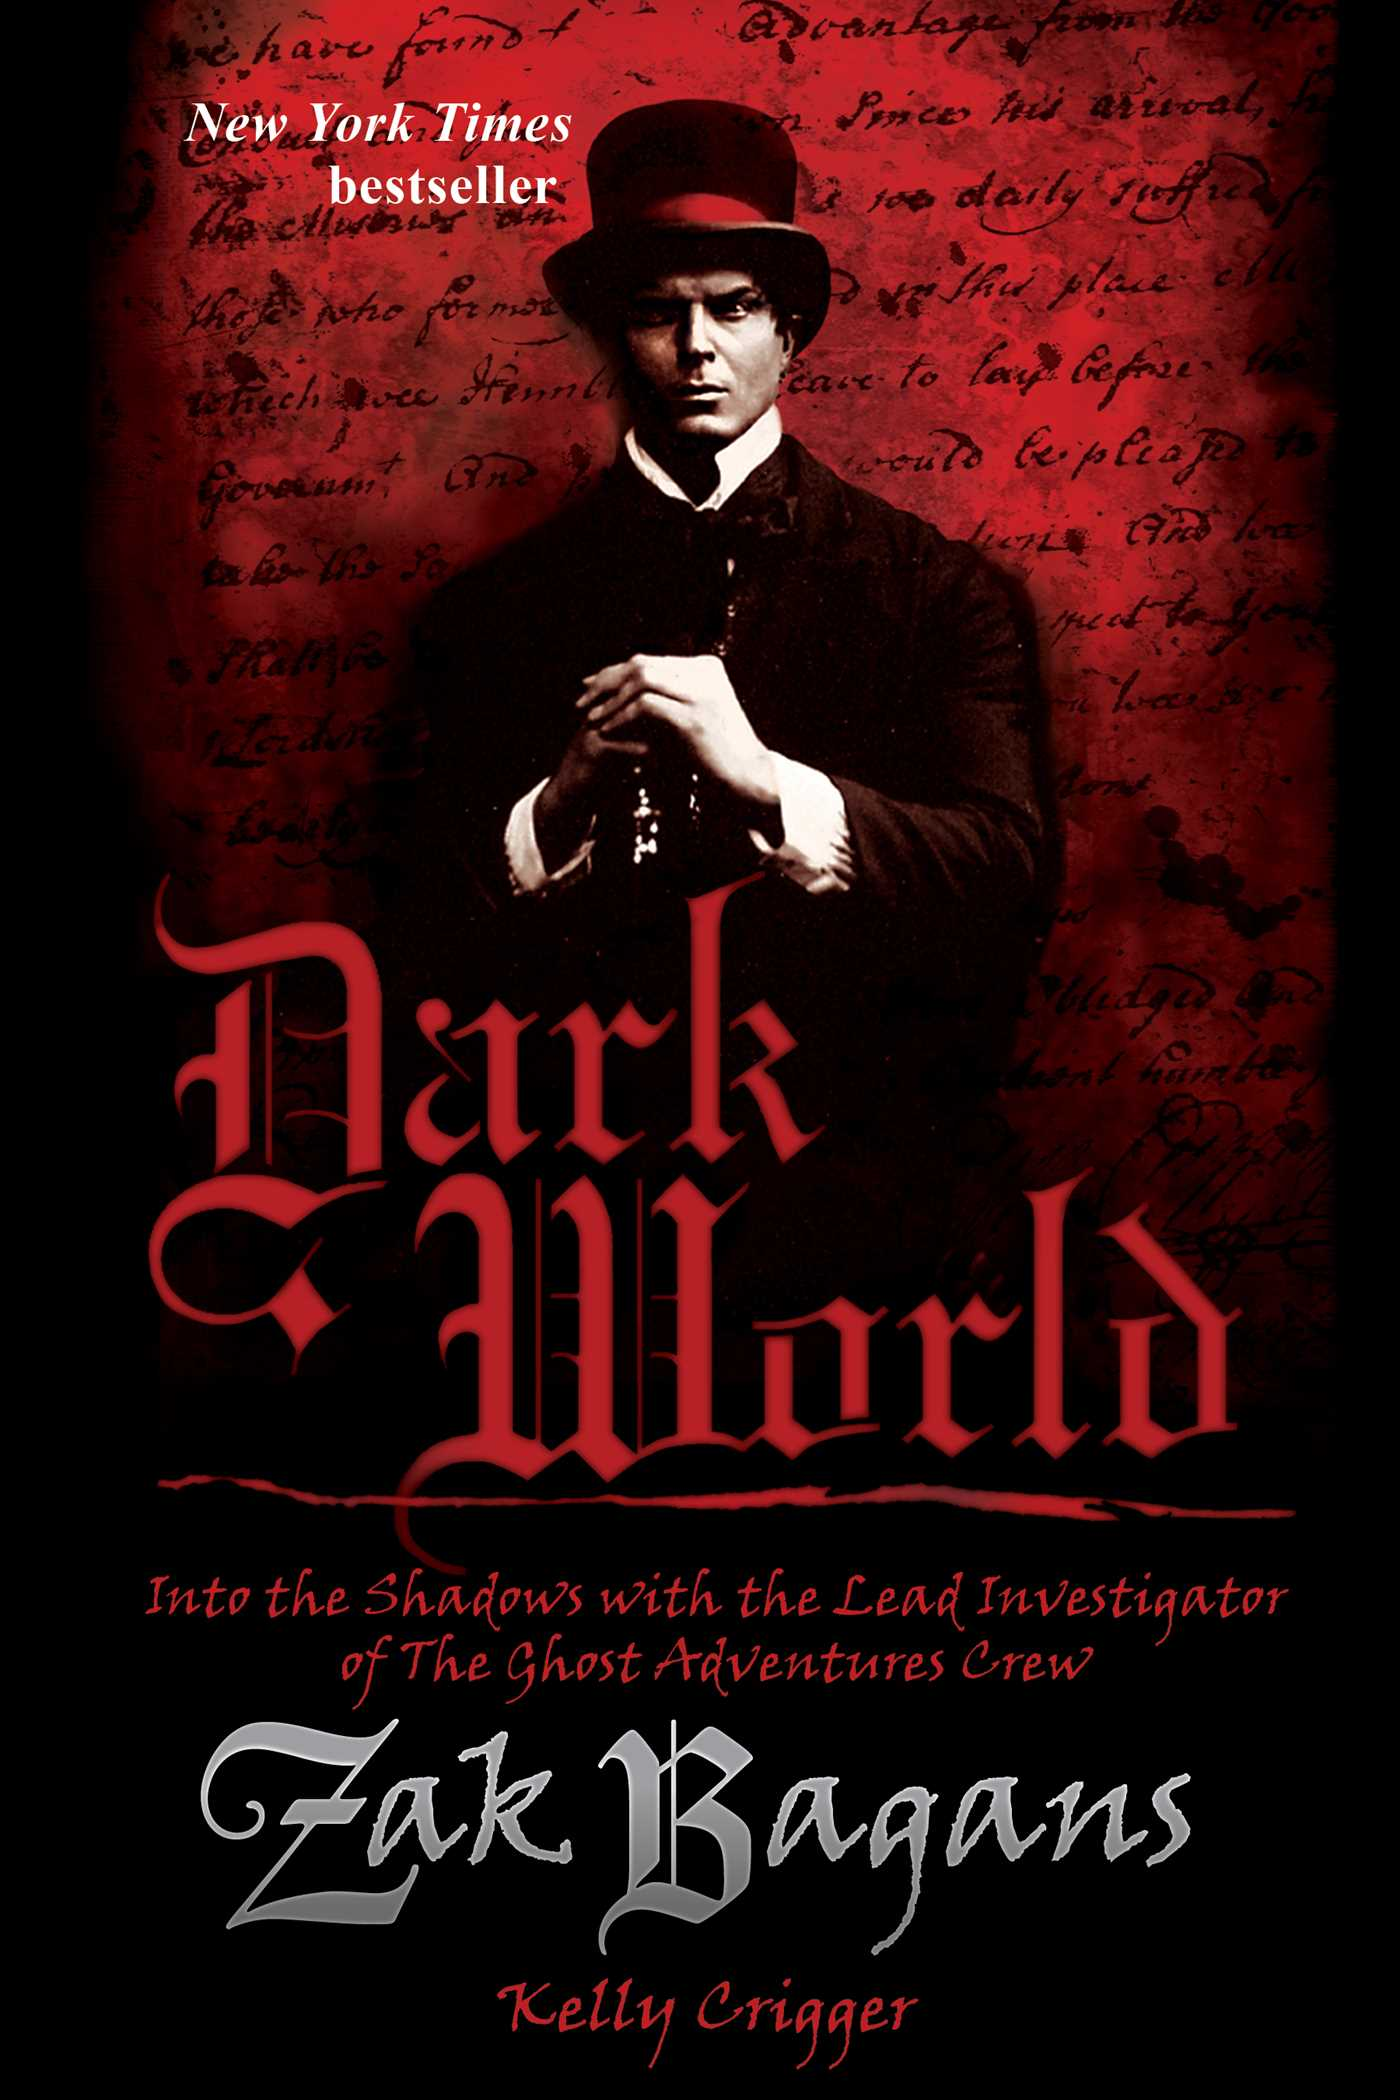 Dark-world-9781936608850_hr